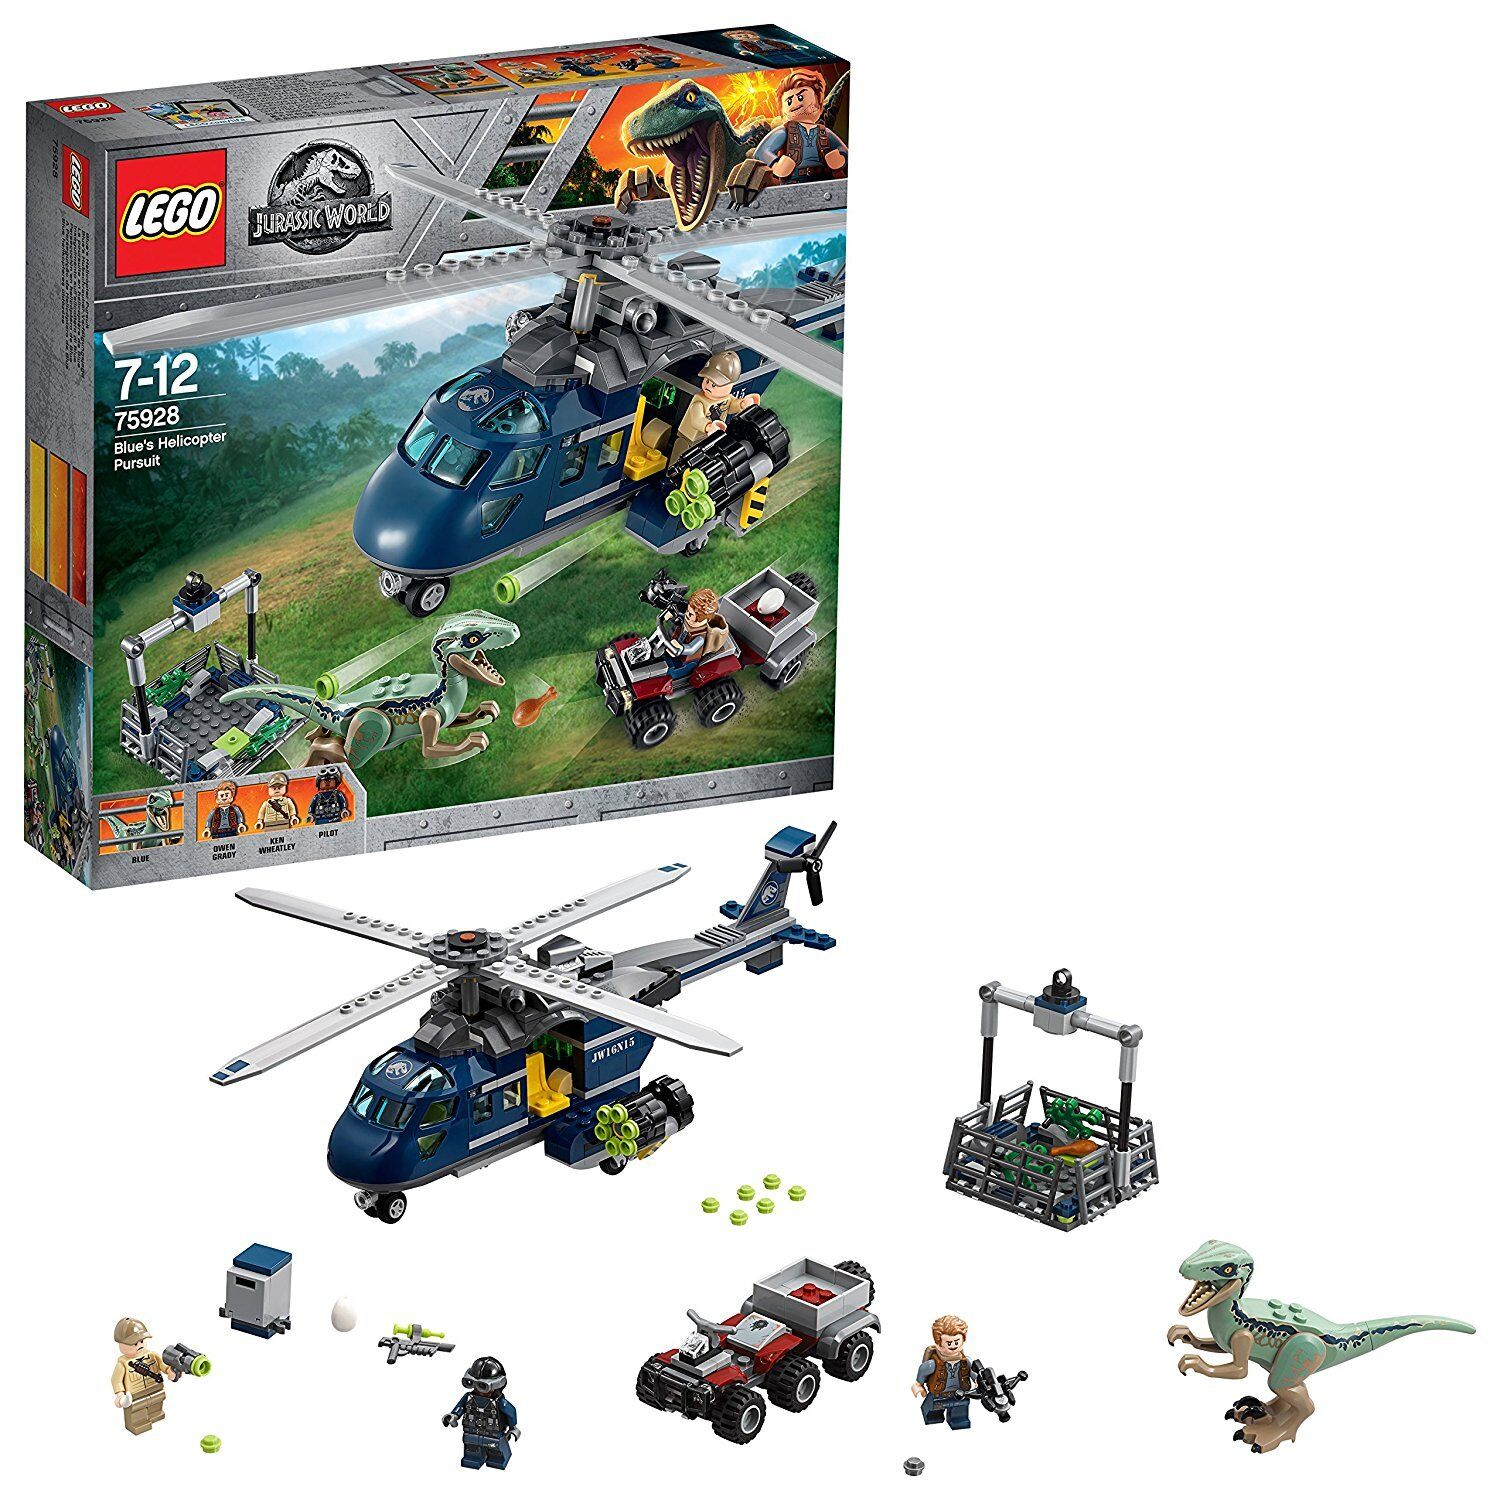 LEGO JURASSIC WORLD blu'S Elicottero Pursuit 75928